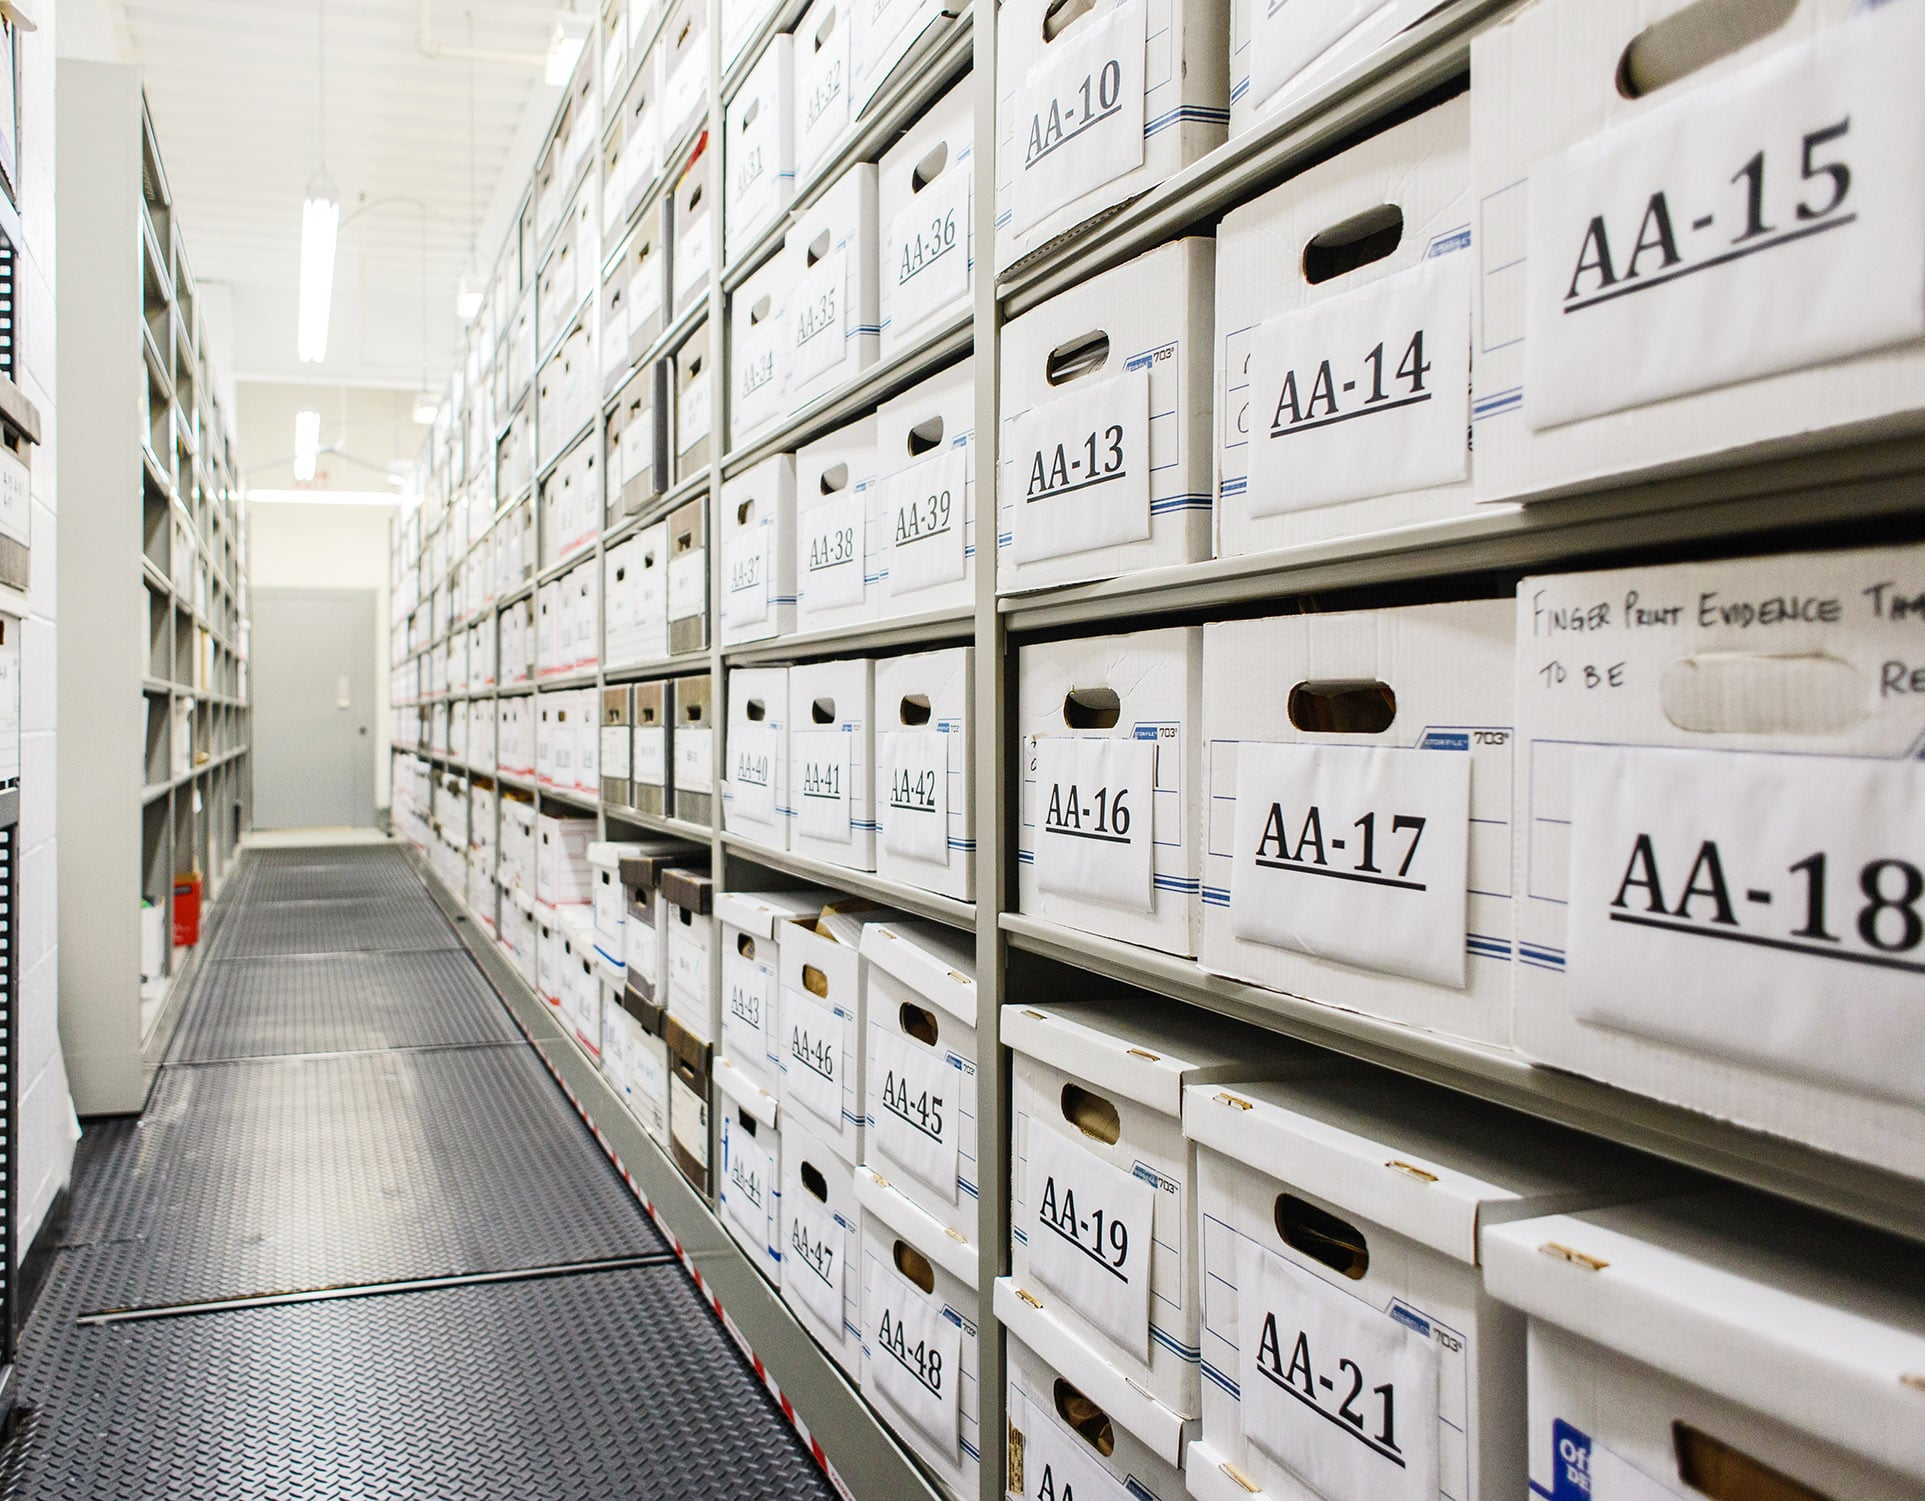 evidence storage compact shelving spacesaver shelves that move - A Comparative Study of the Problem of the Admissibility of Improperly Obtained Evidence